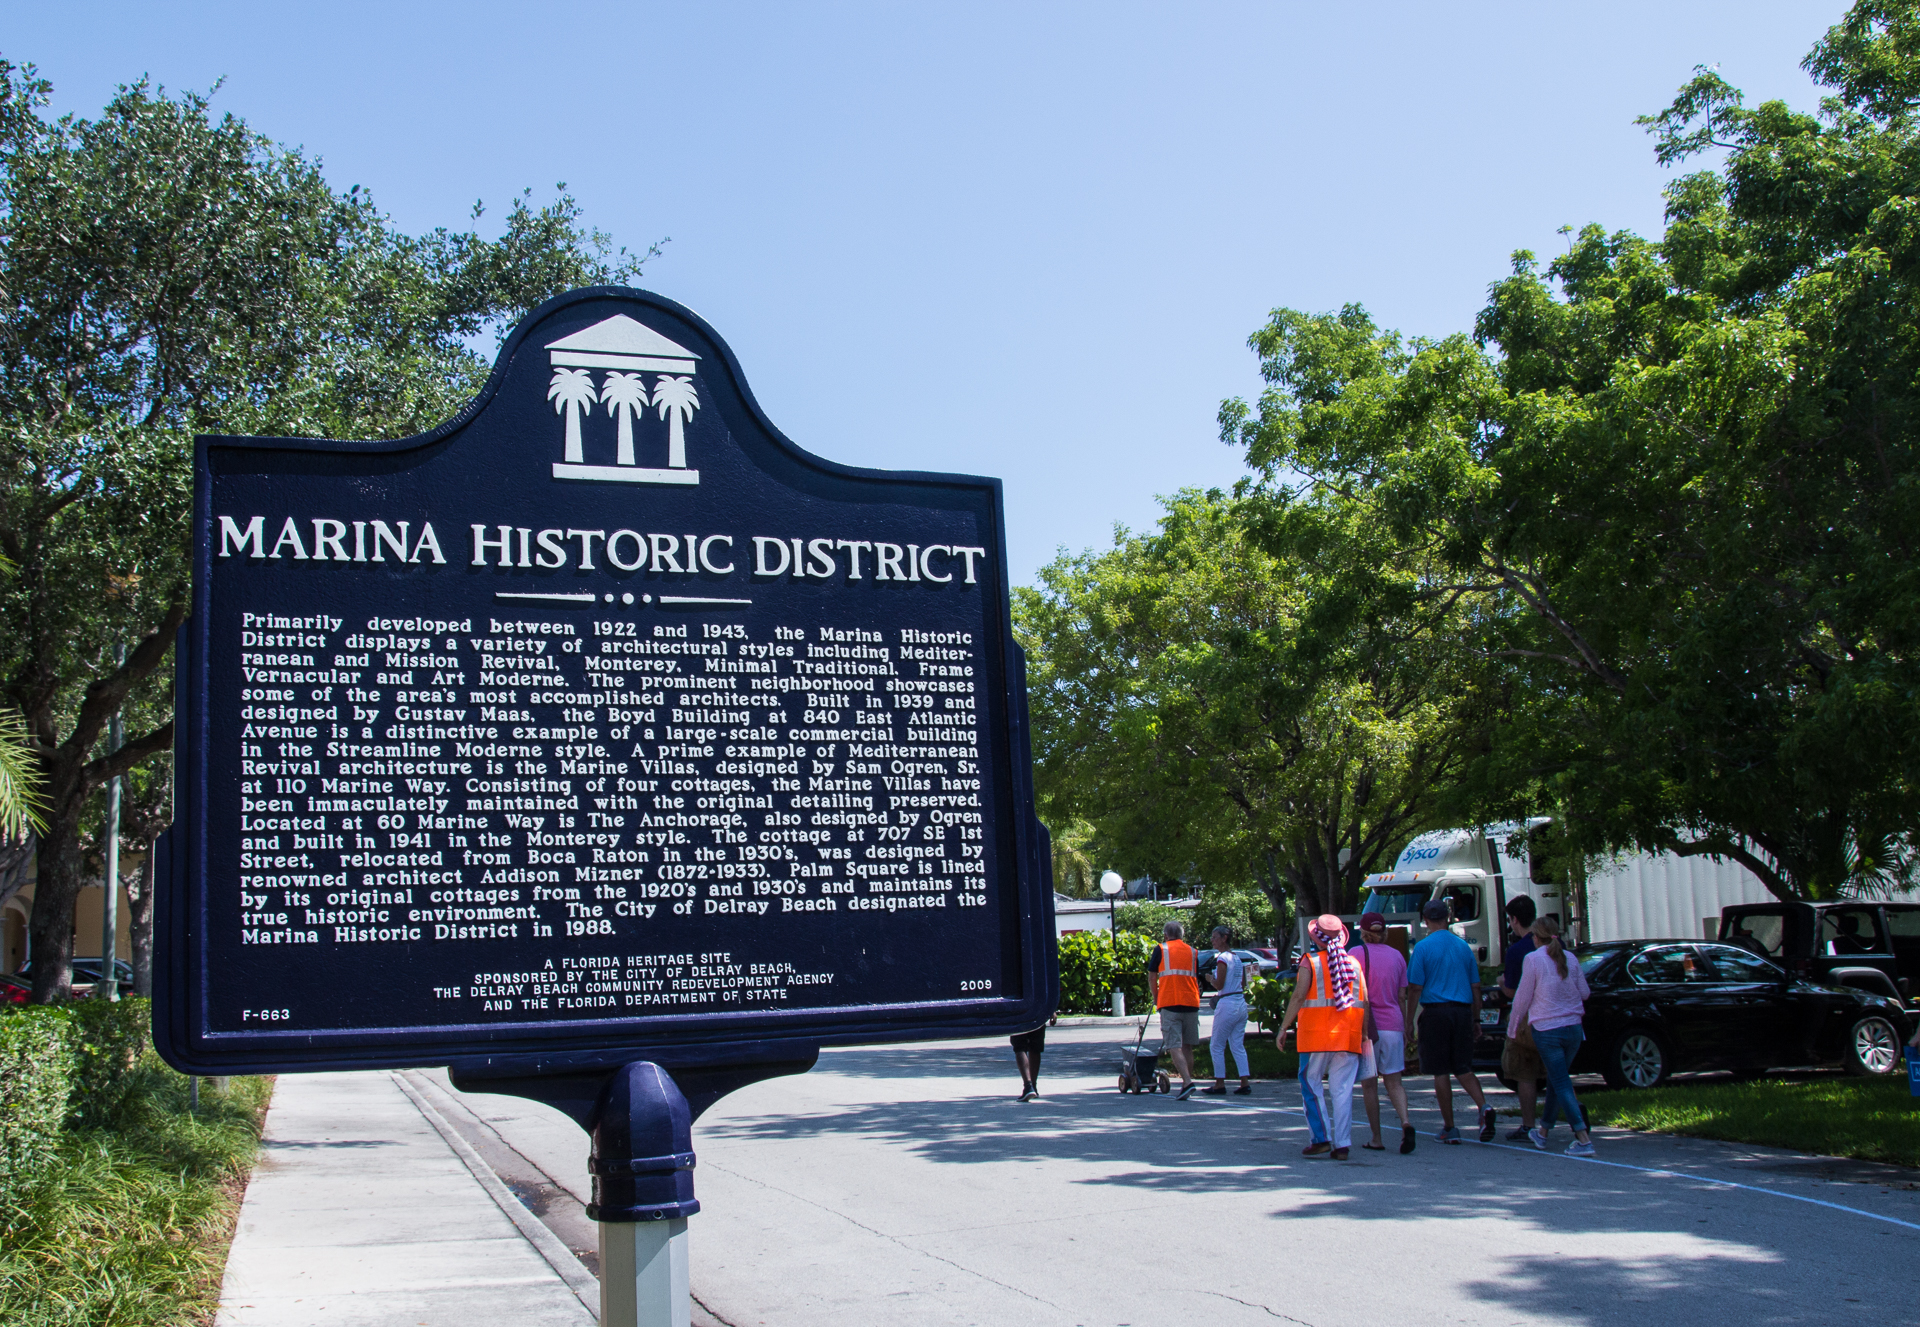 Historic Marina District